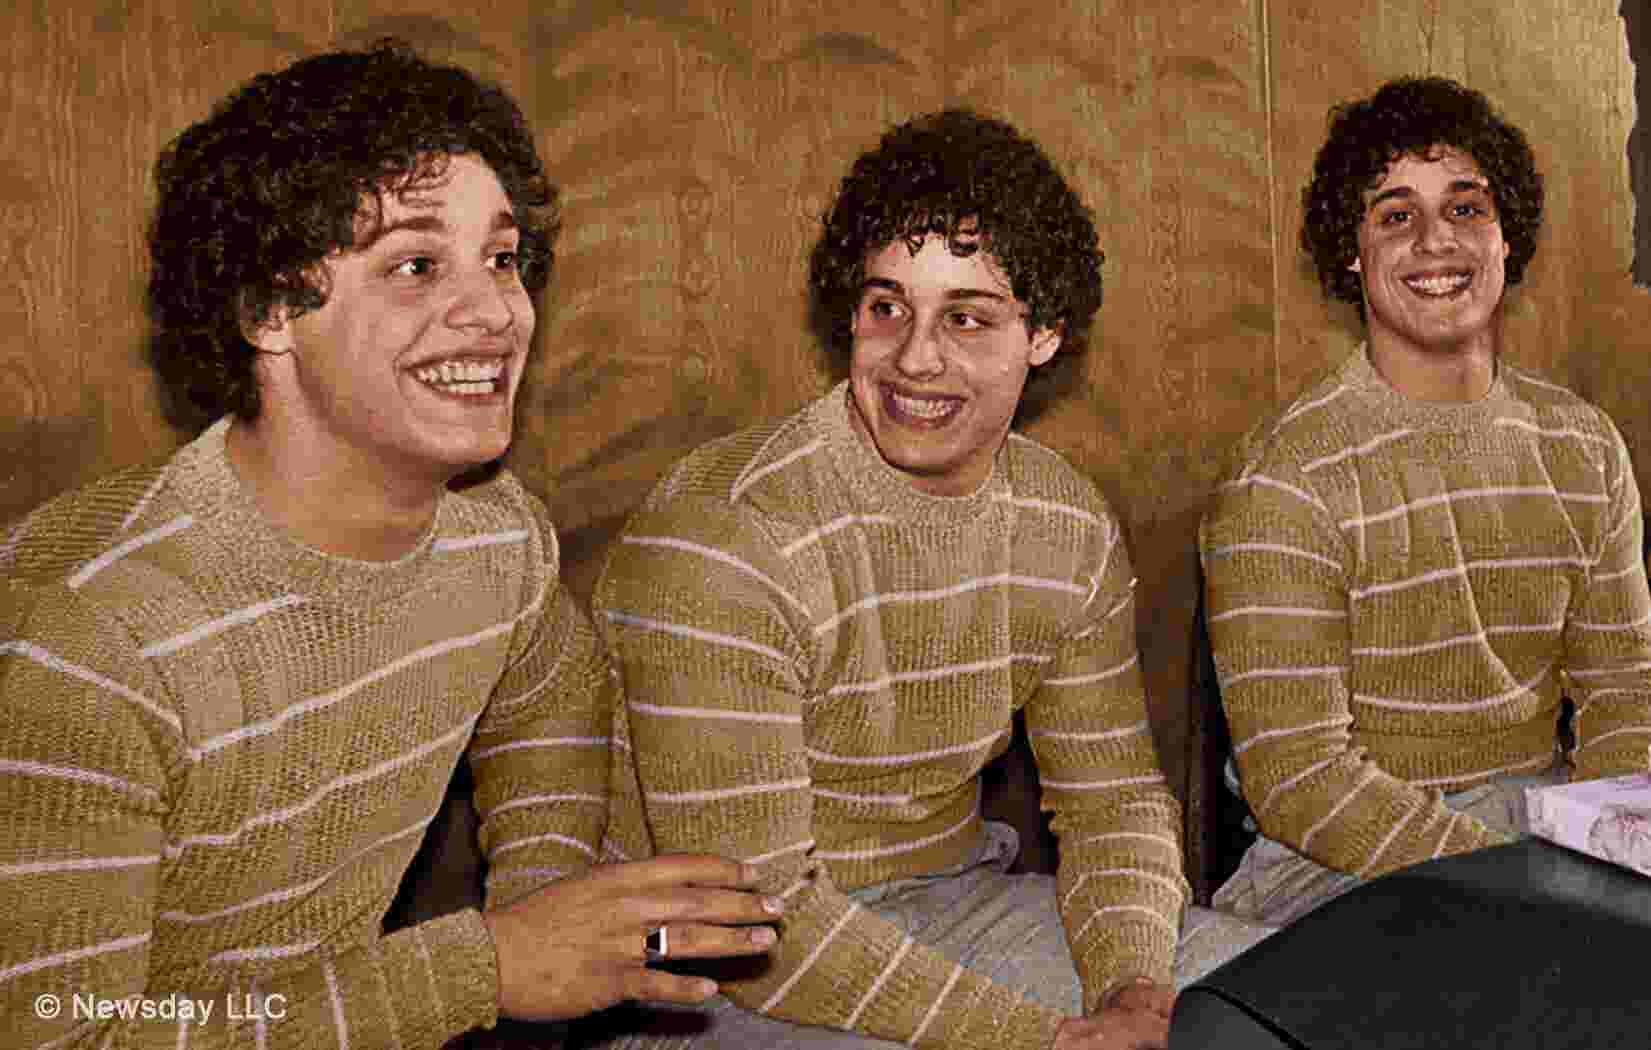 three identical strangers is true story of triplets separated at birth